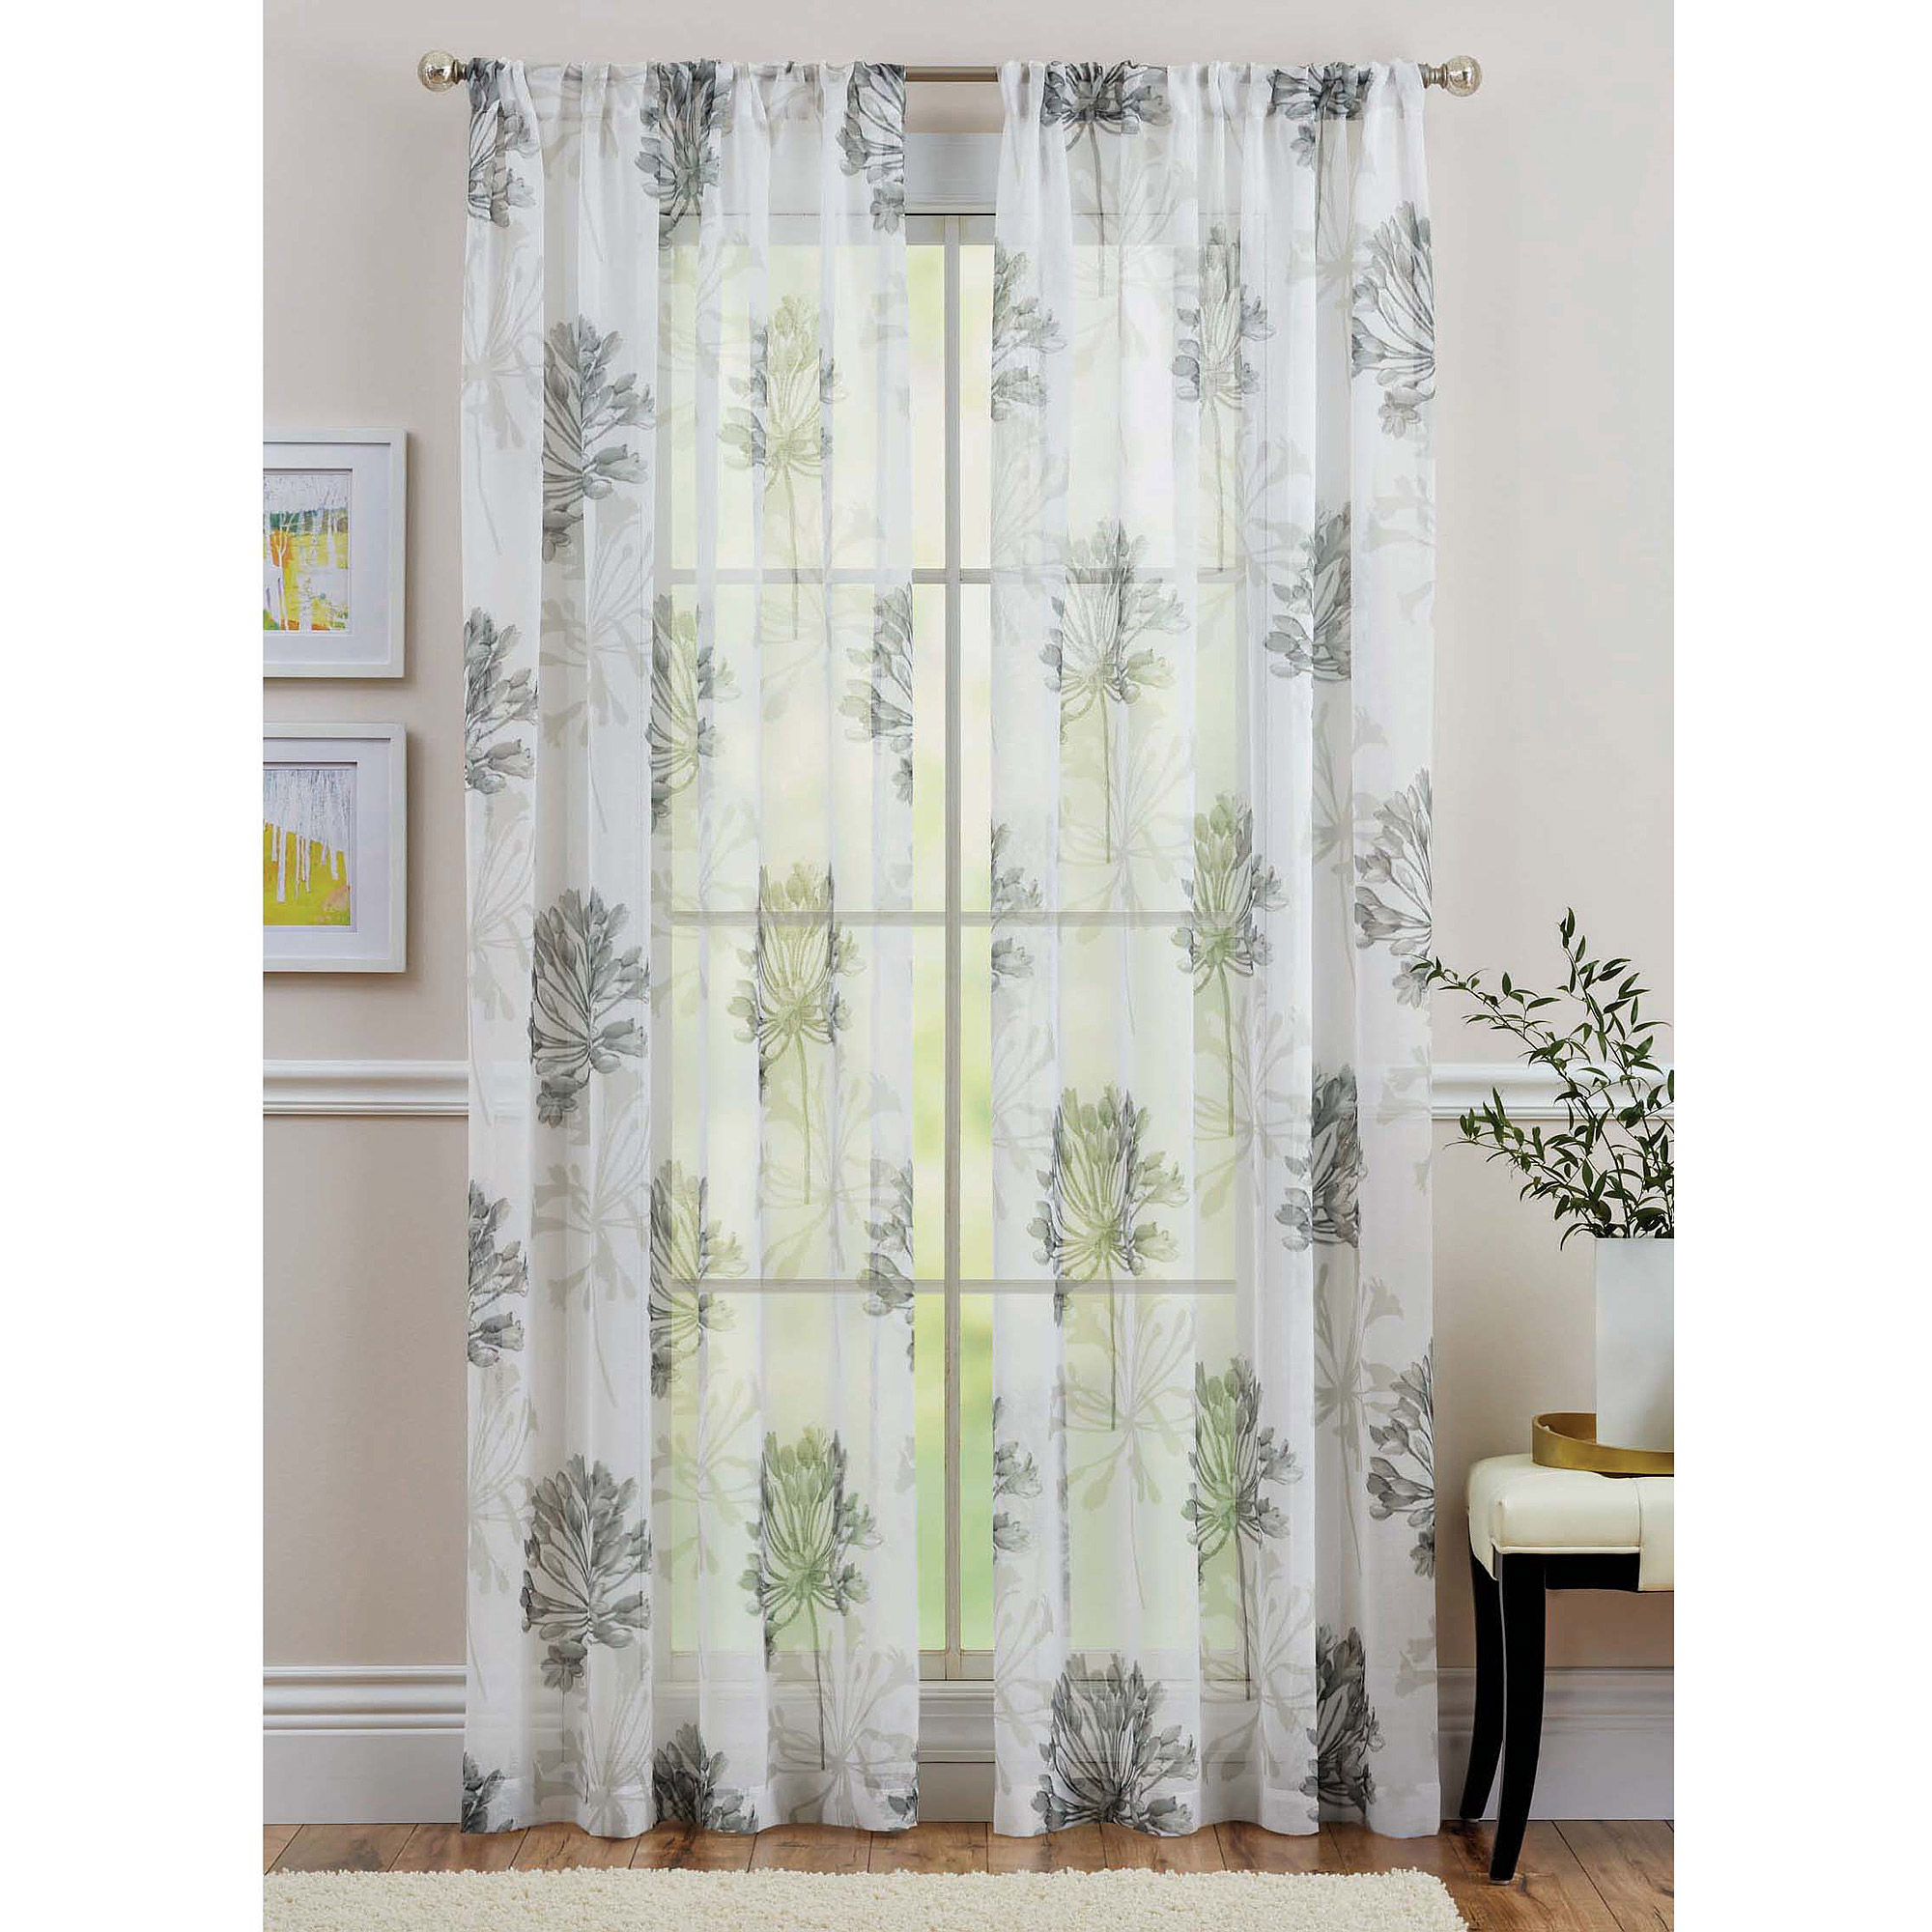 Better Homes and Gardens Dandelion Bloom Sheer Window Panel